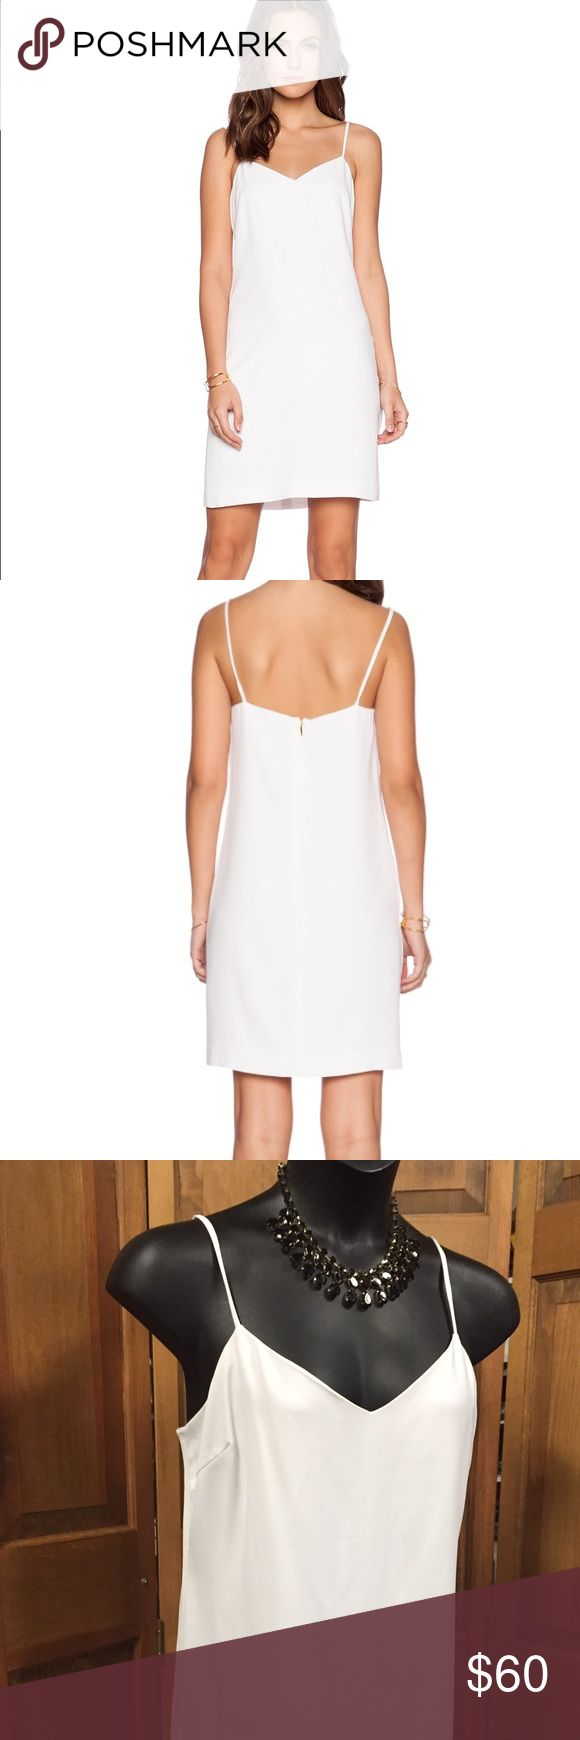 Trina Turk Basic White Shift Dress XL Polyester simple dress with back Zip. Item is new. Trina Turk Dresses